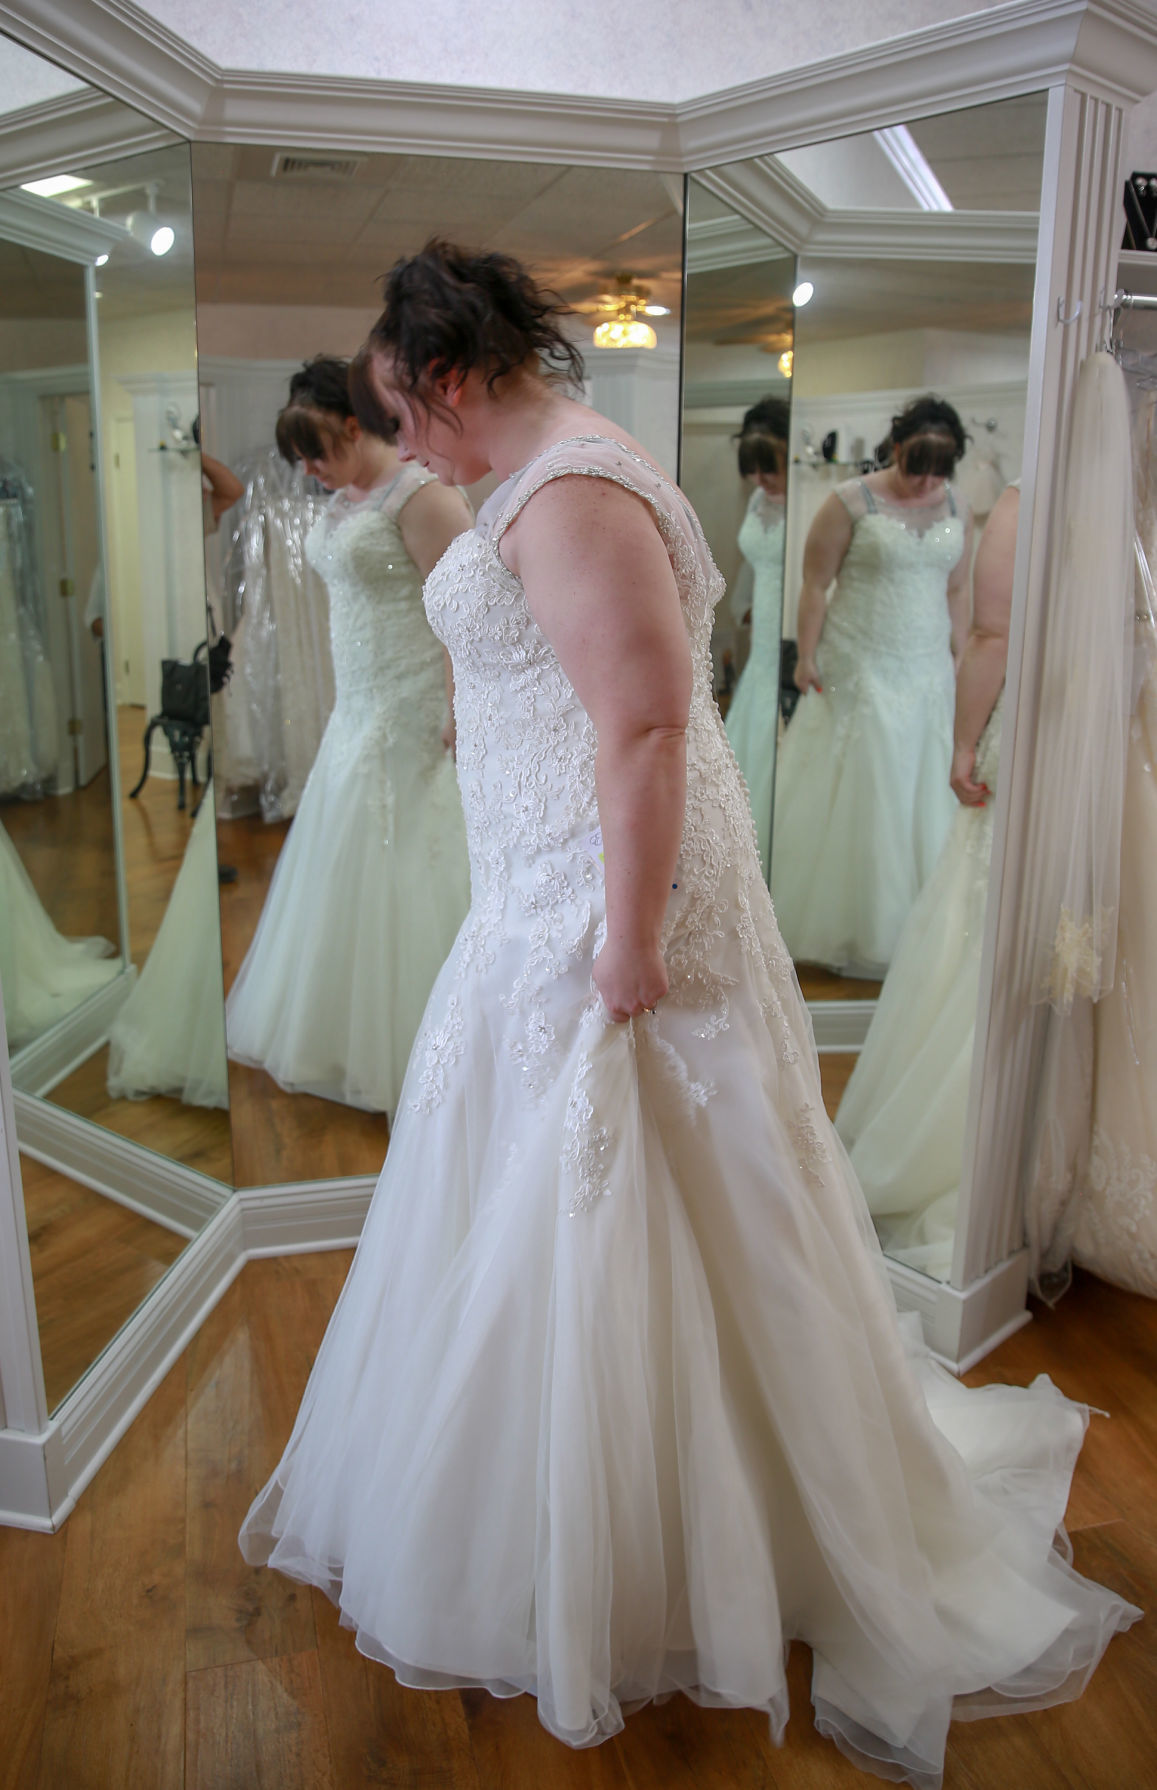 Brides Across America - Operation Wedding Gown